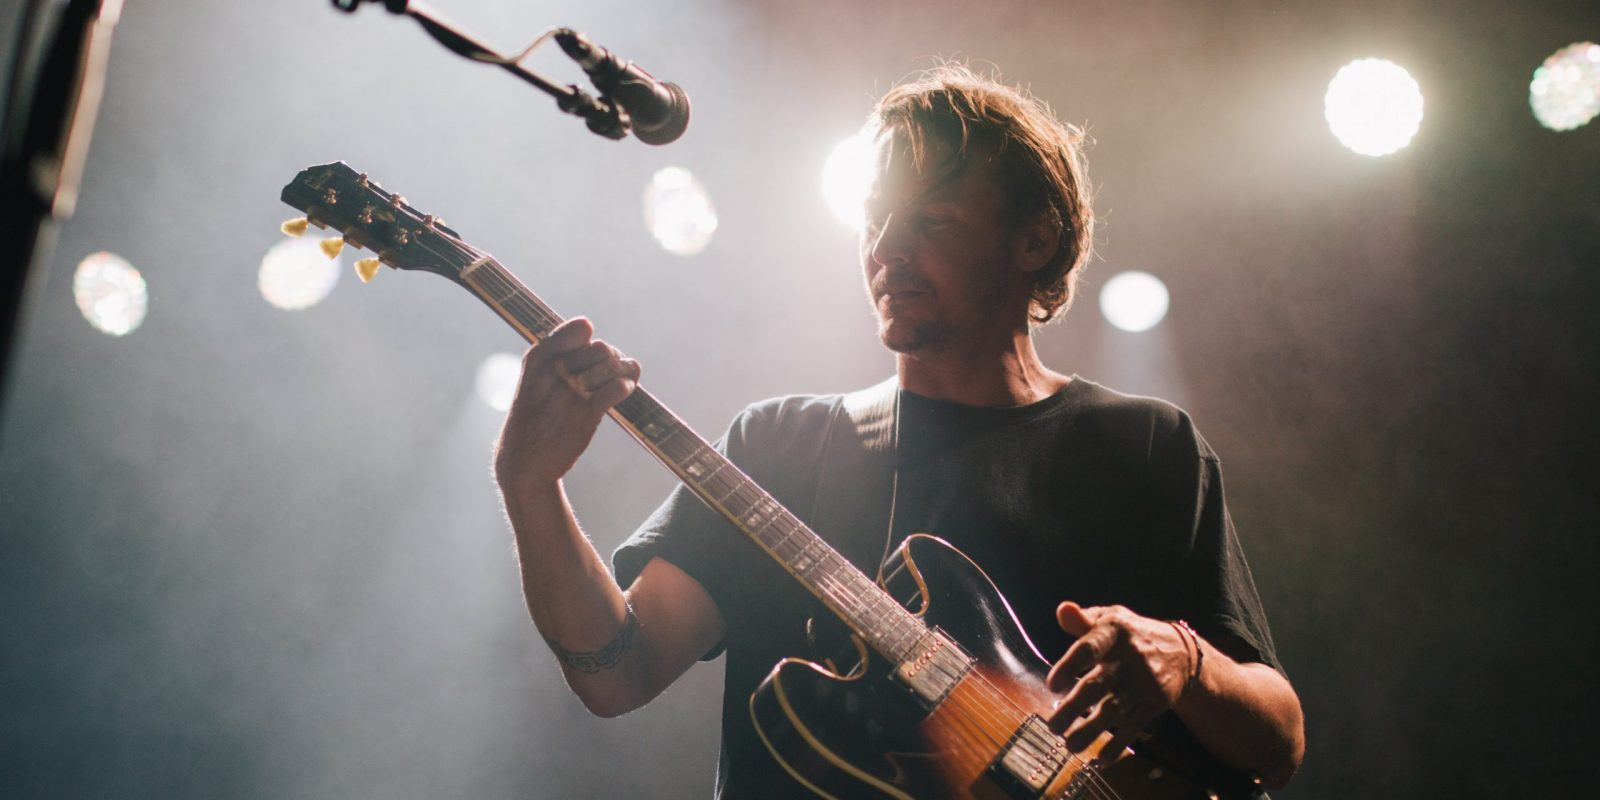 Artist playing a guitar on stage